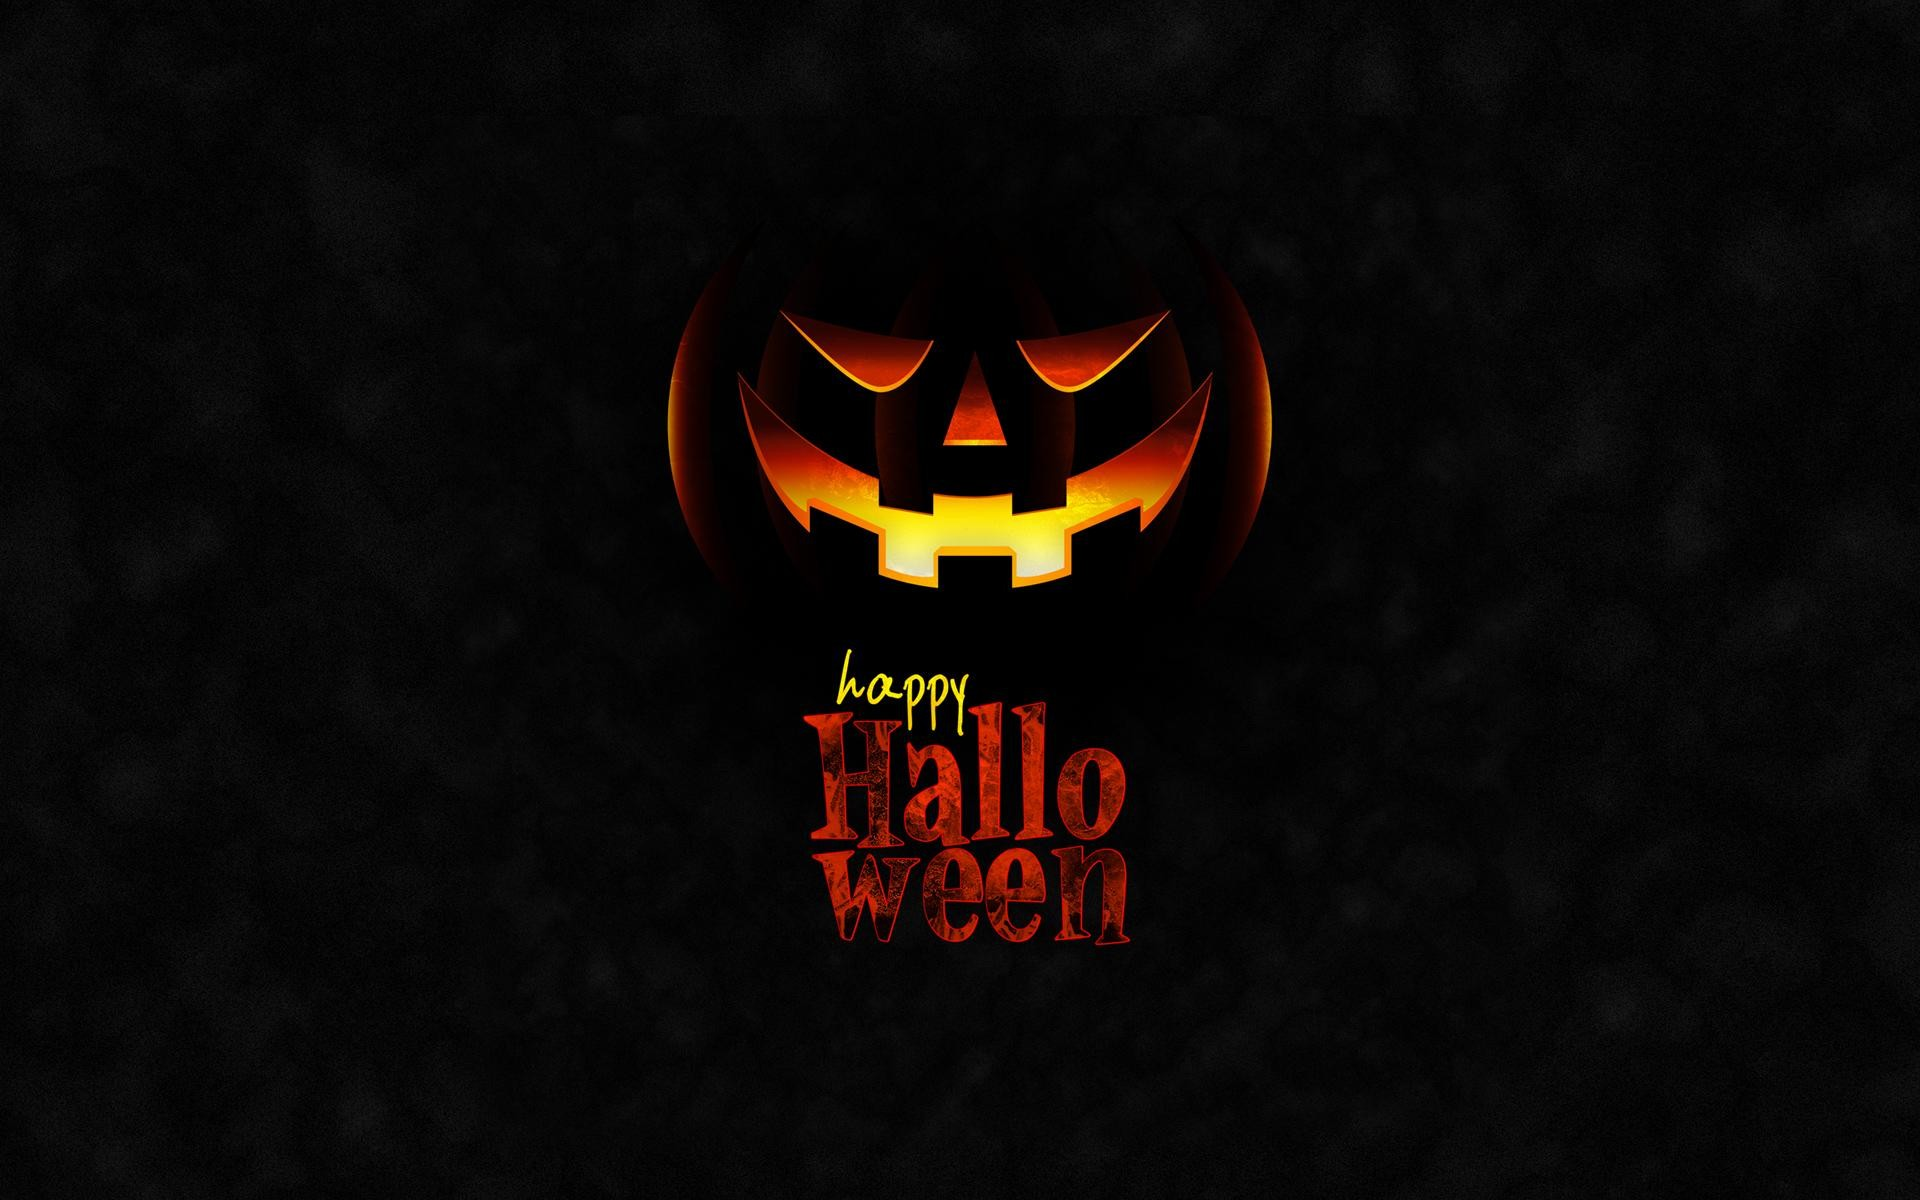 Free-Scary-Halloween-Picture-Download-1